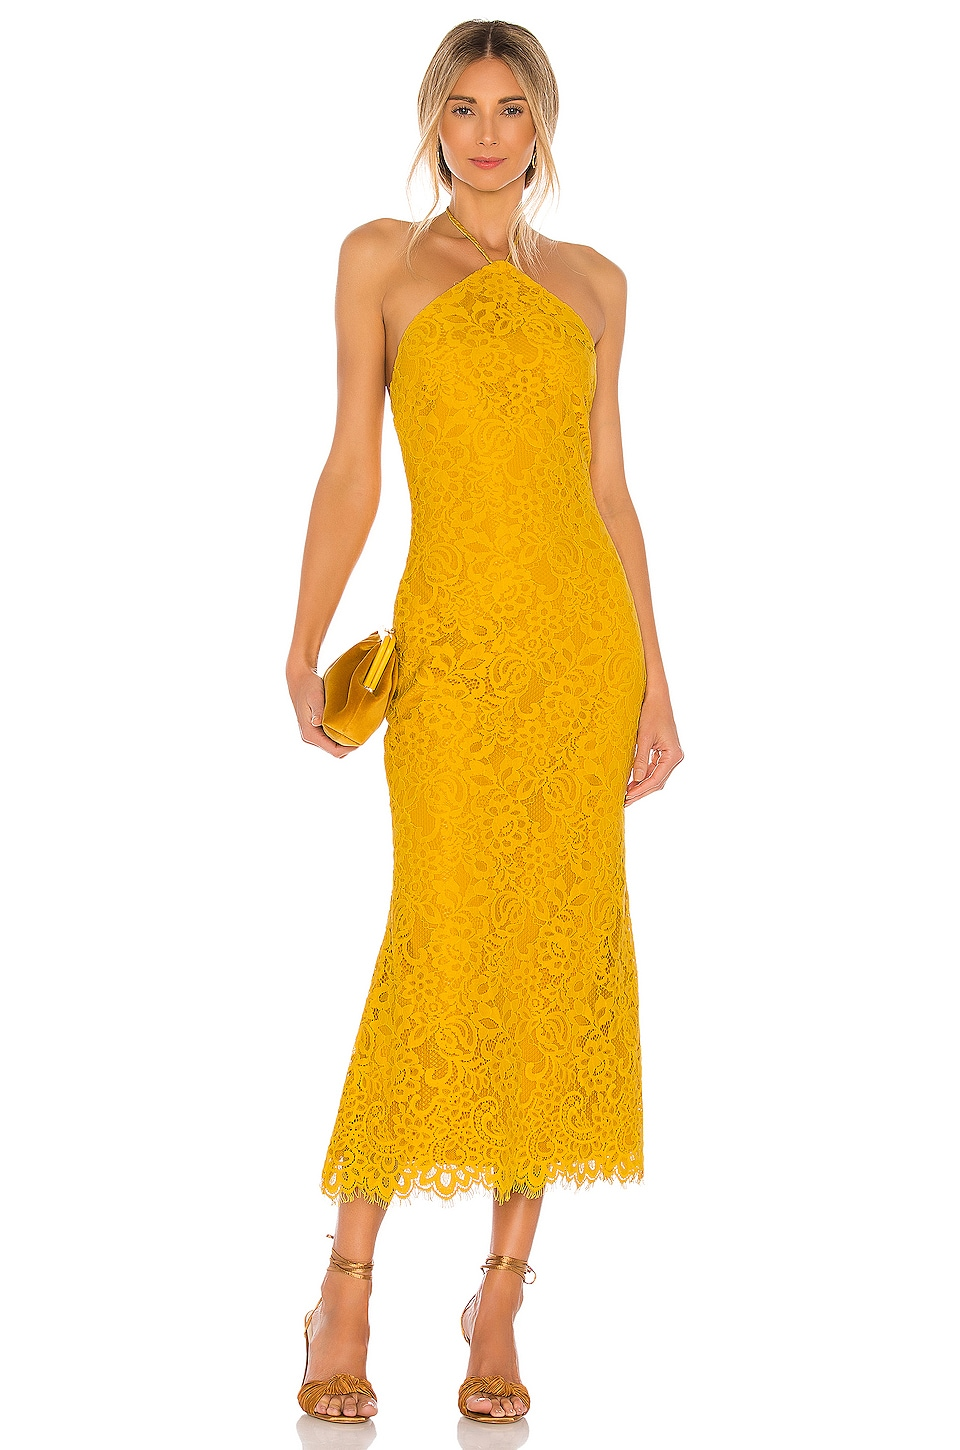 House of Harlow 1960 x REVOLVE Rosaline Dress in Yellow